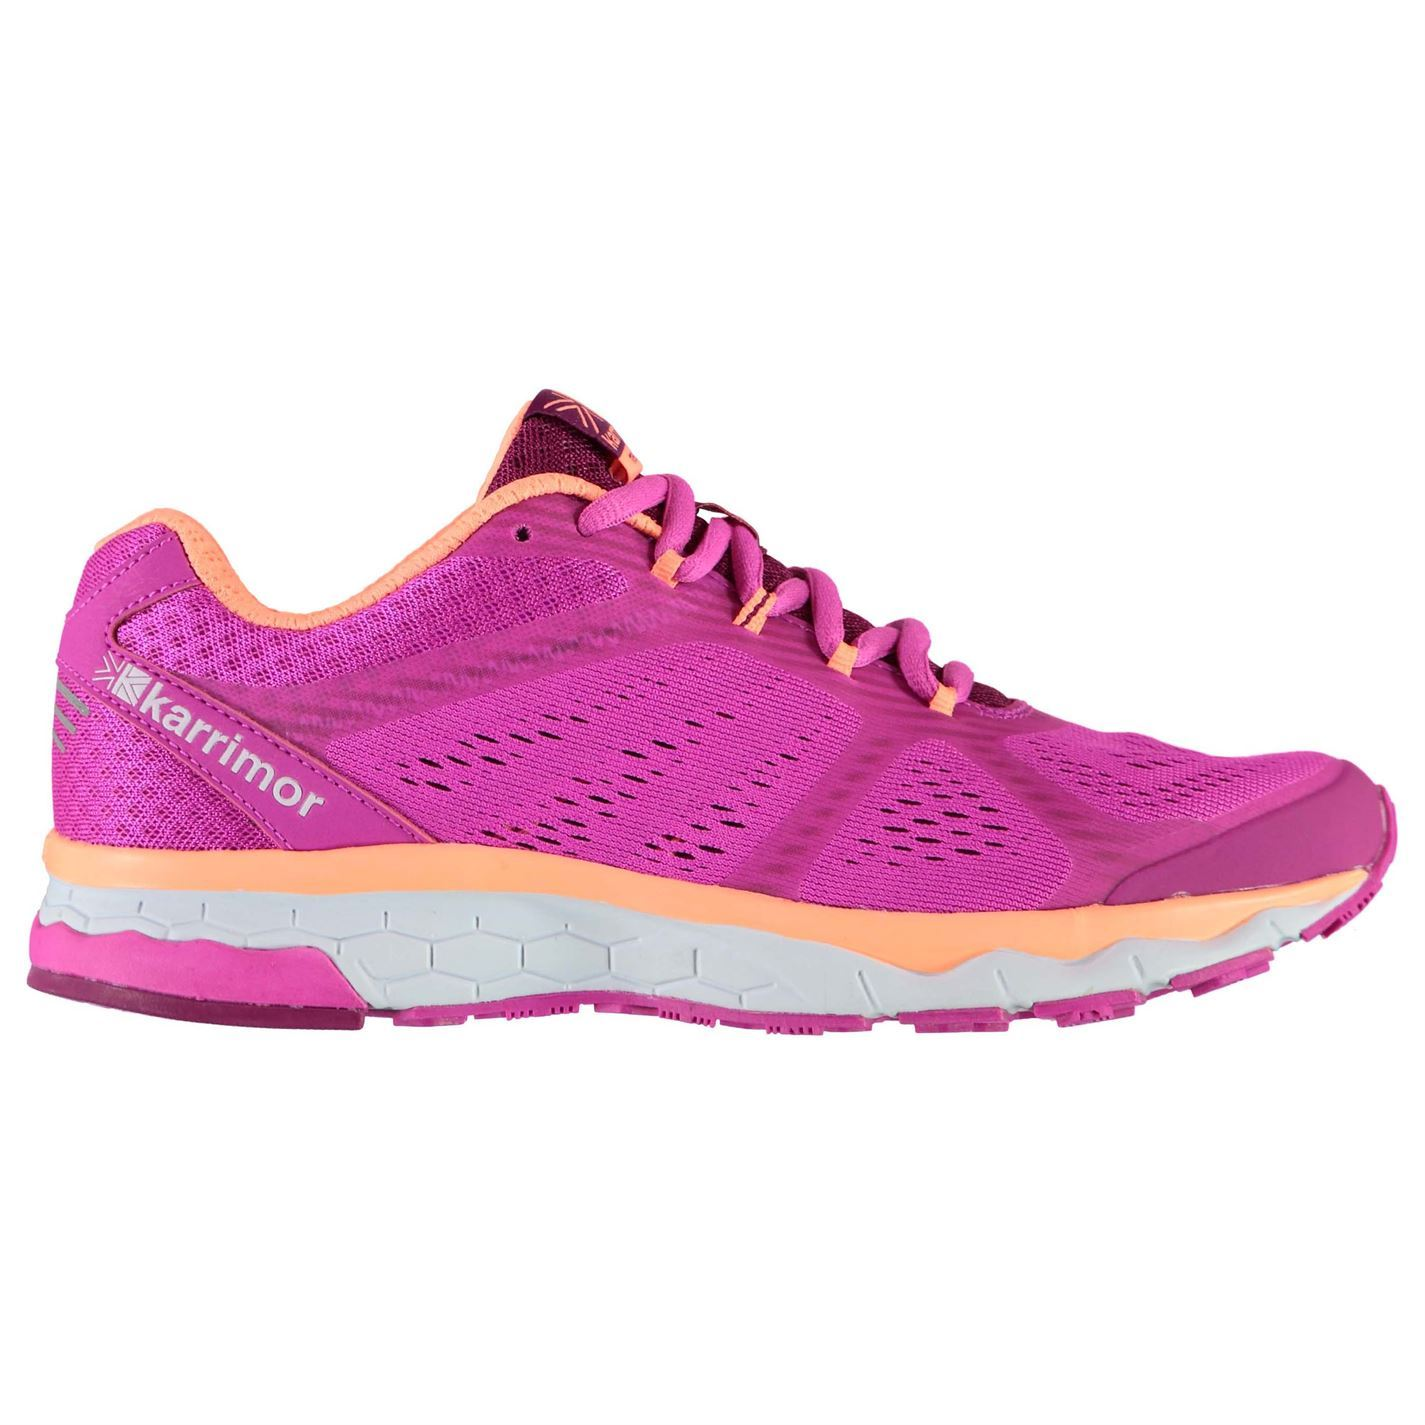 ebd960f51 Clothes, Shoes & Accessories Karrimor Womens Ladies Tempo 5 Support Road  Running Shoes Trainers Lace Up